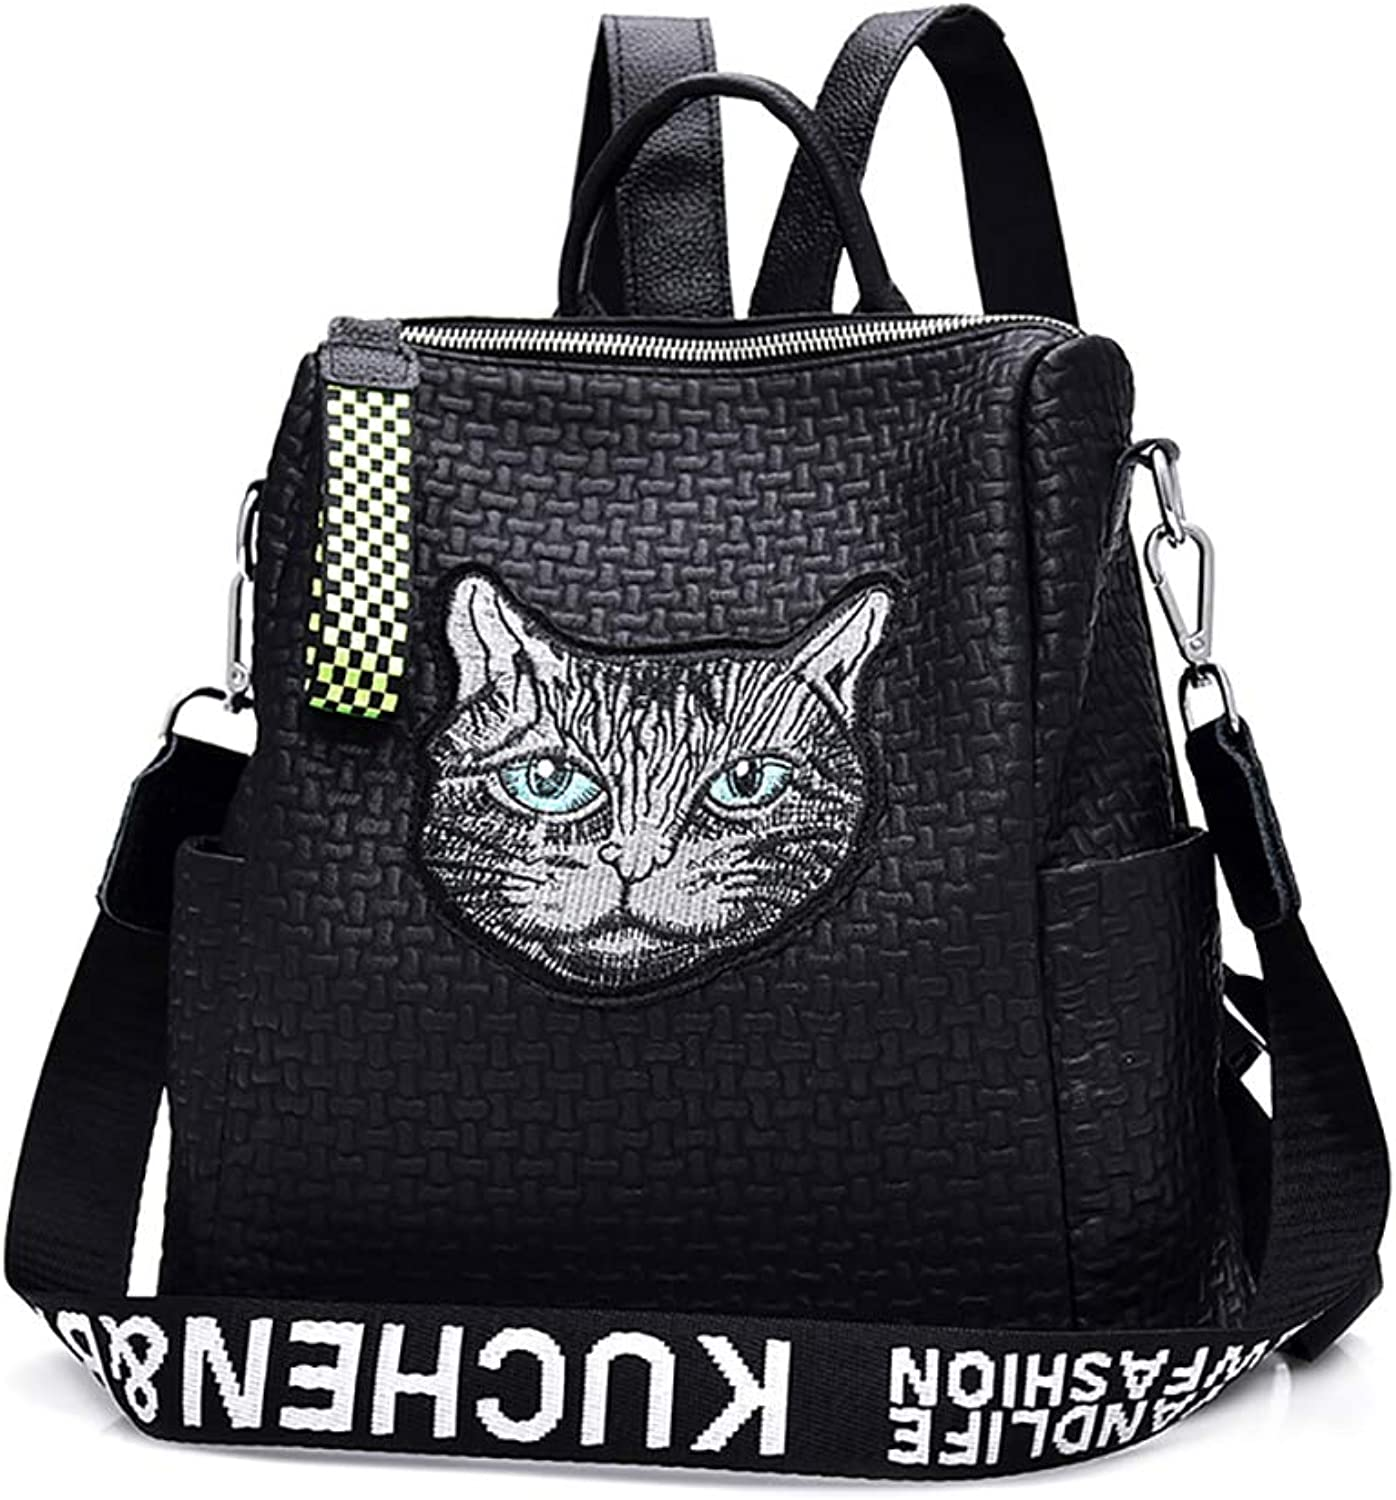 SMILINGGIRL Backpack Female Fashion Waterproof PU College Bag Wild Multi-Function Messenger Bag Embroidery Travel Small Backpack